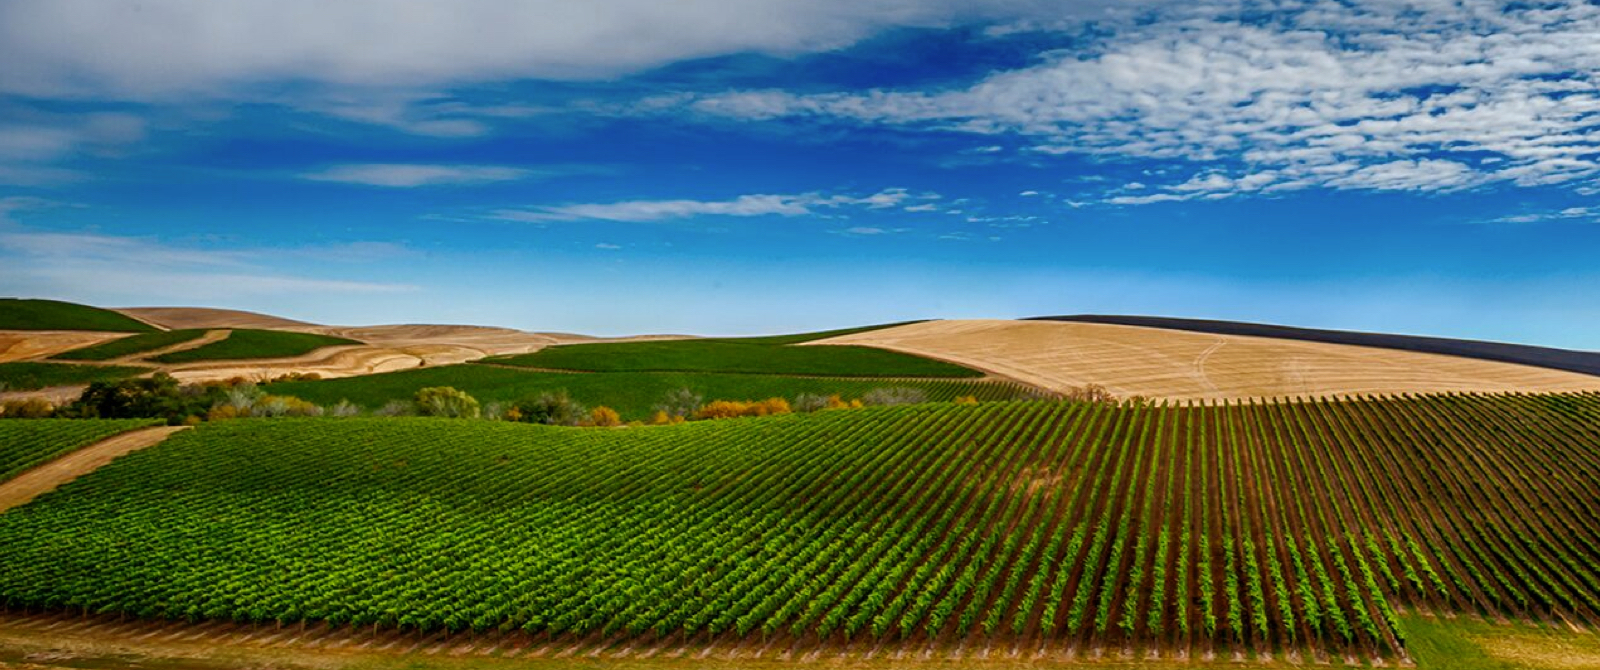 Vineyards and Palouse wheat fields